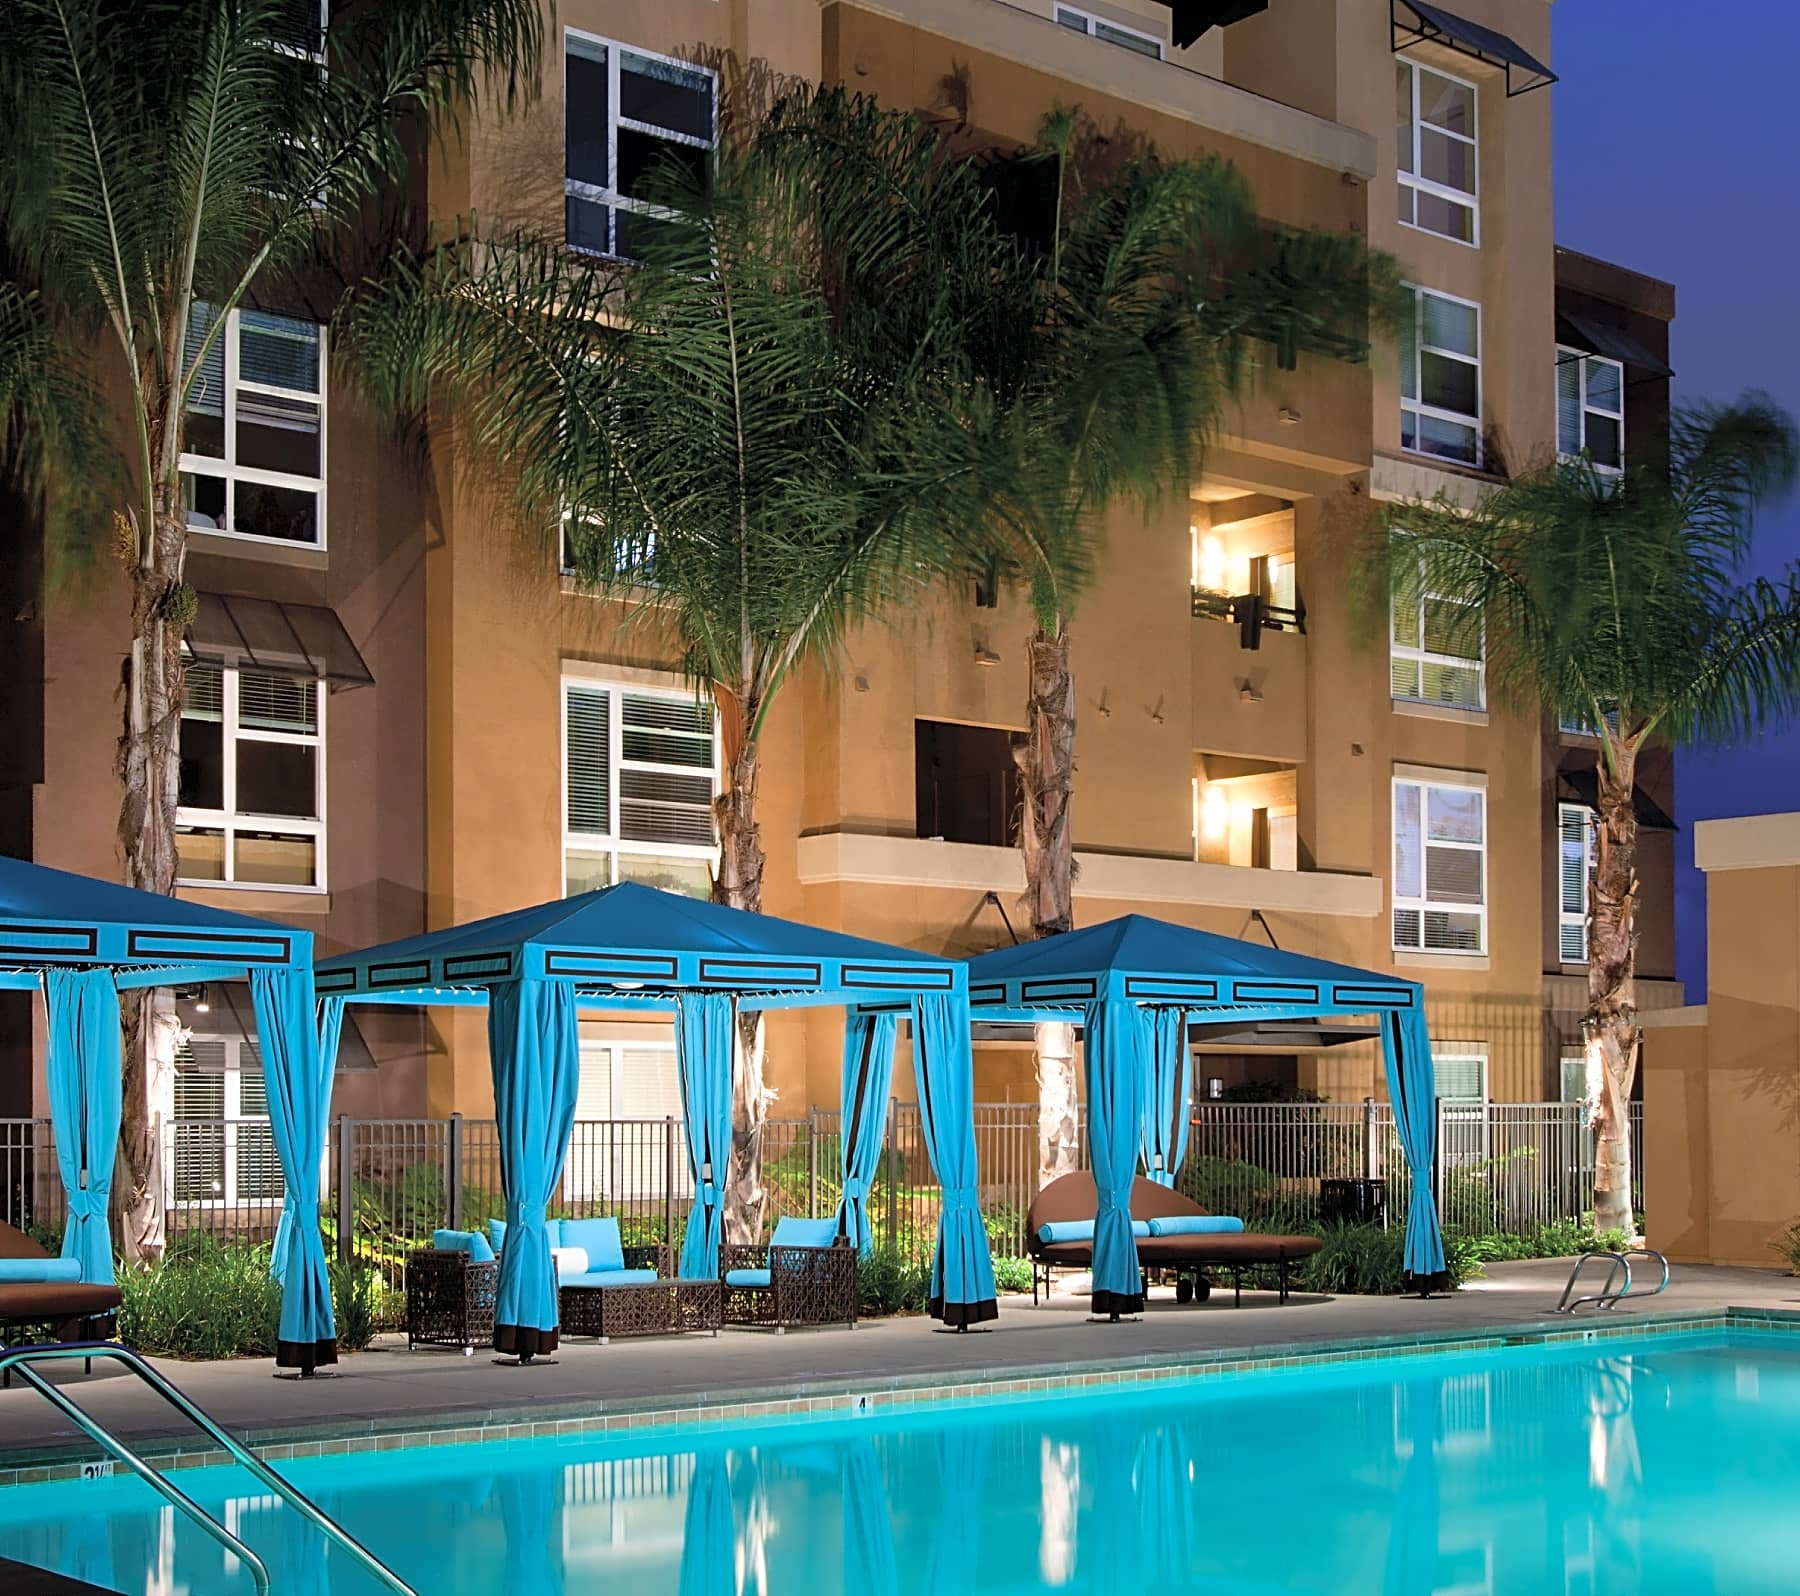 Quail Hill Apartments In Irvine Ca: Calypso Apartments And Lofts